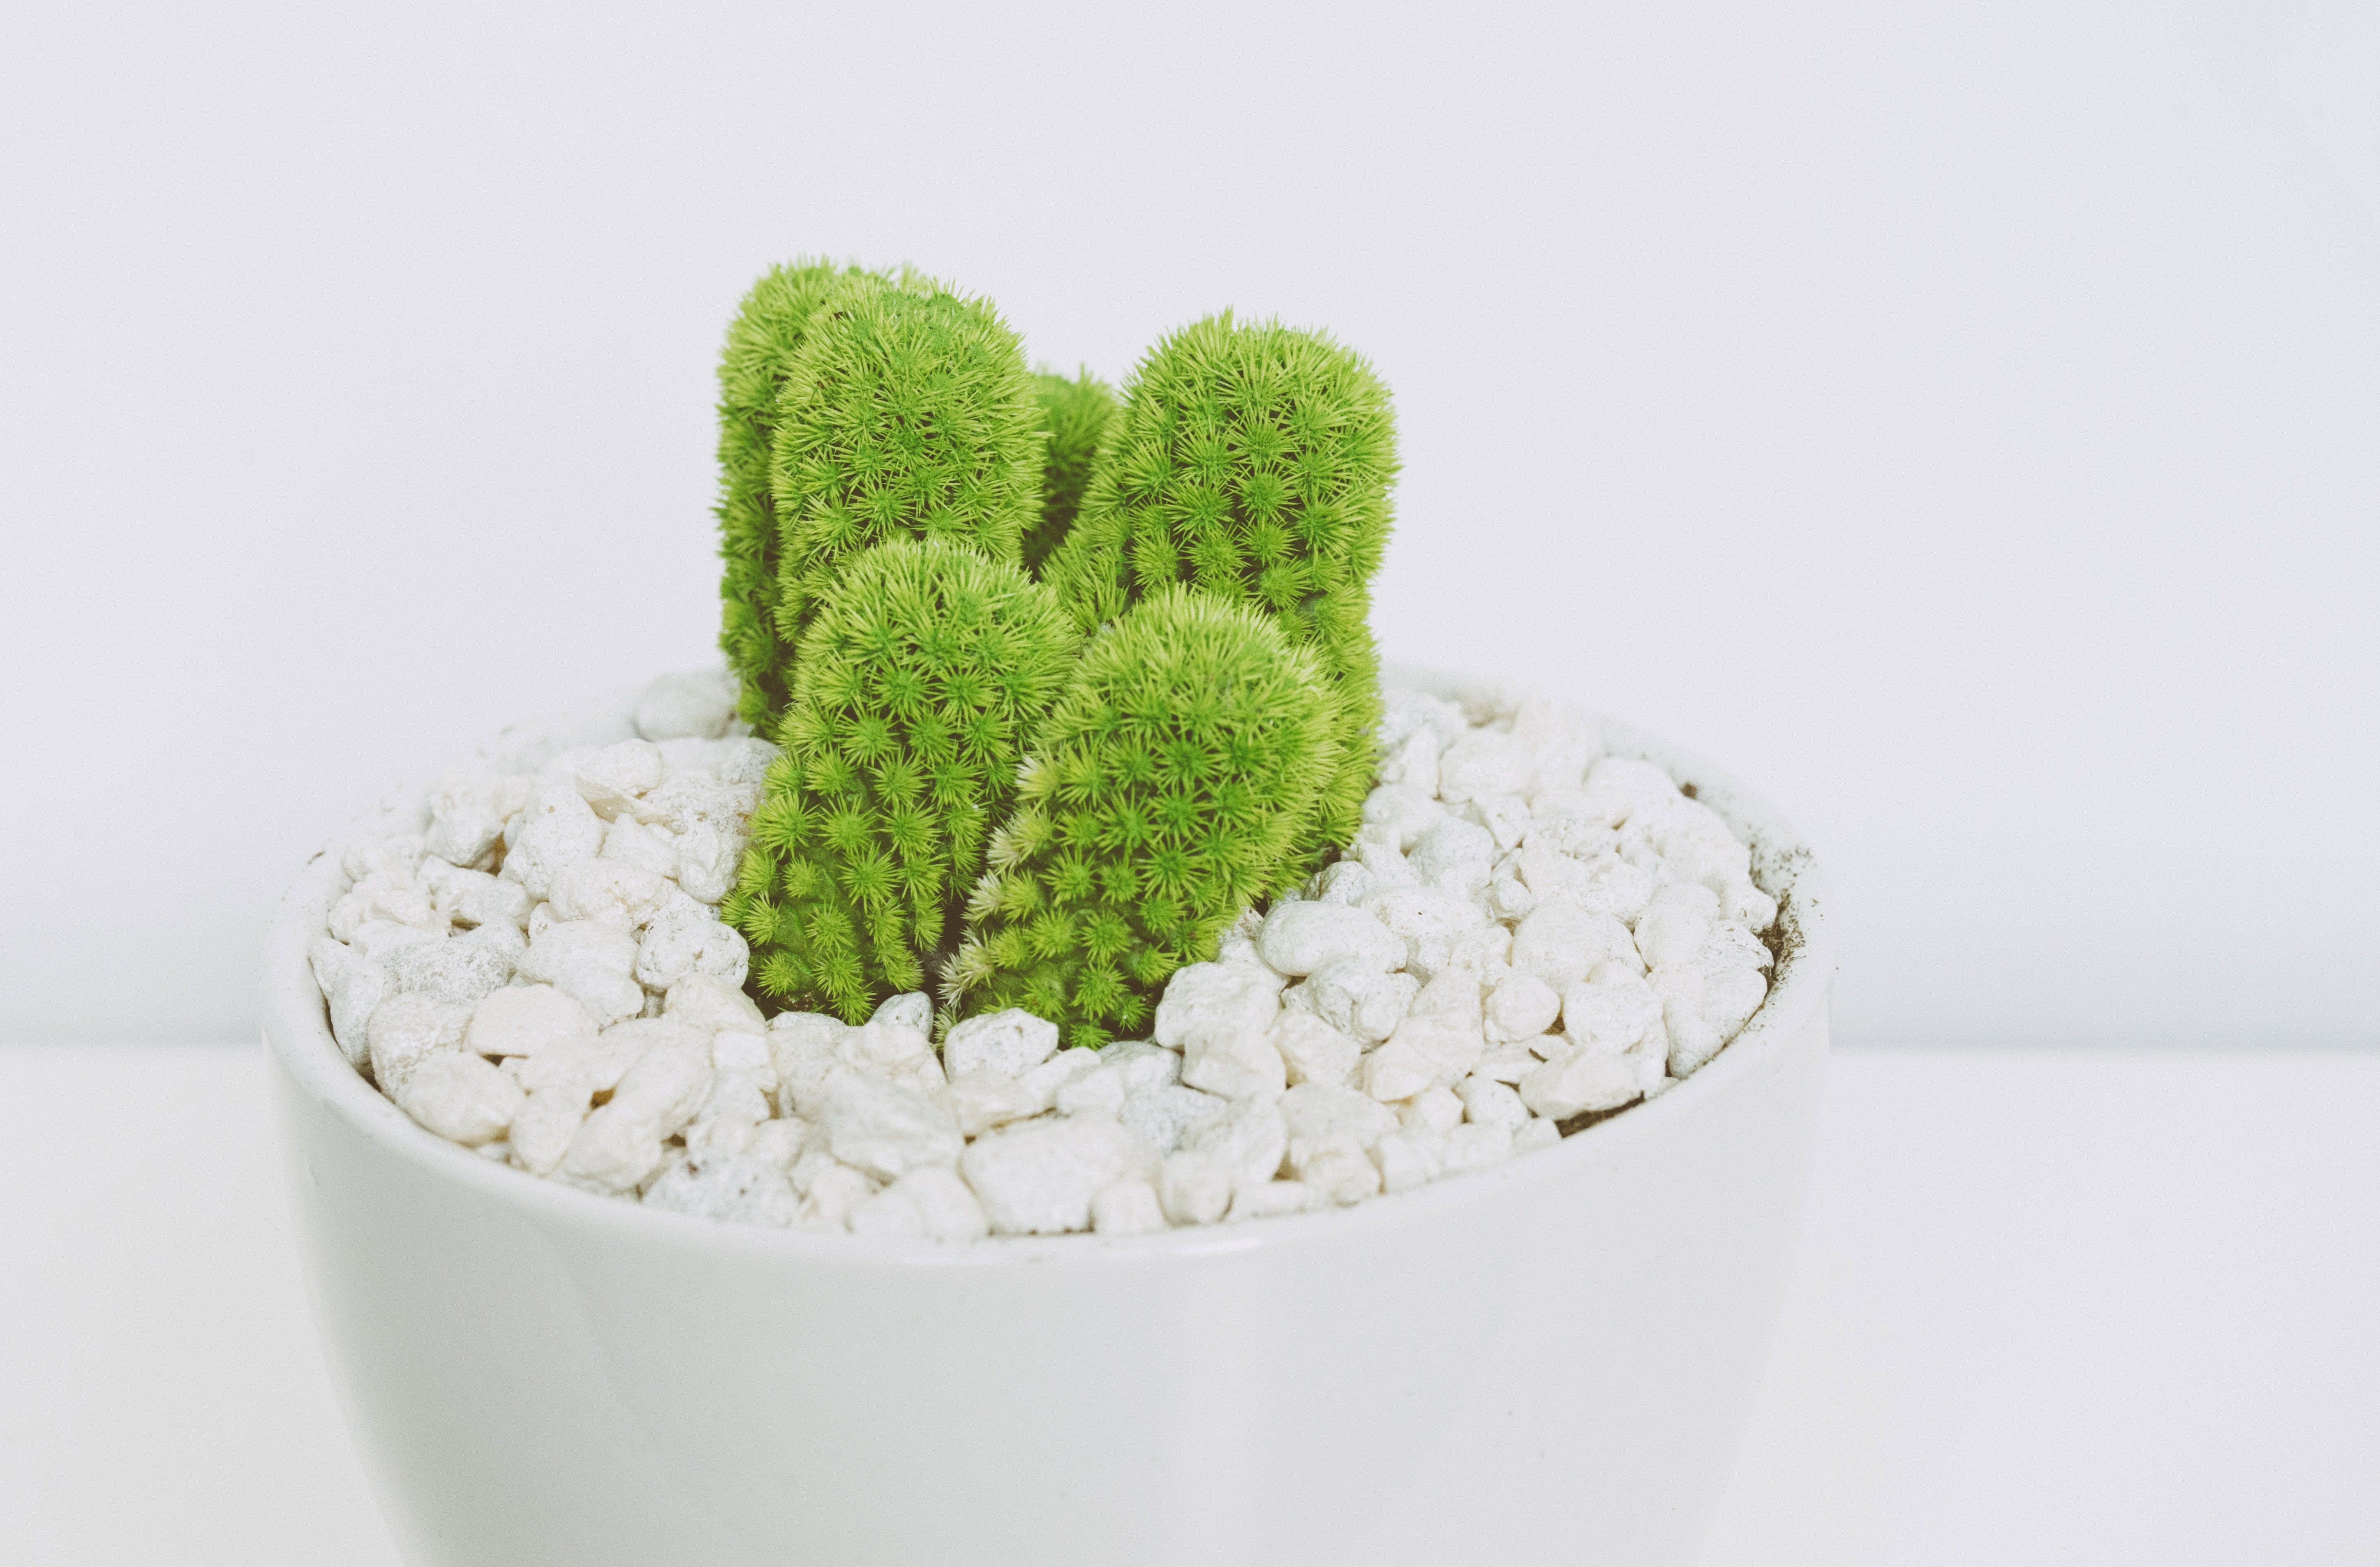 Green Cactus in White Pot